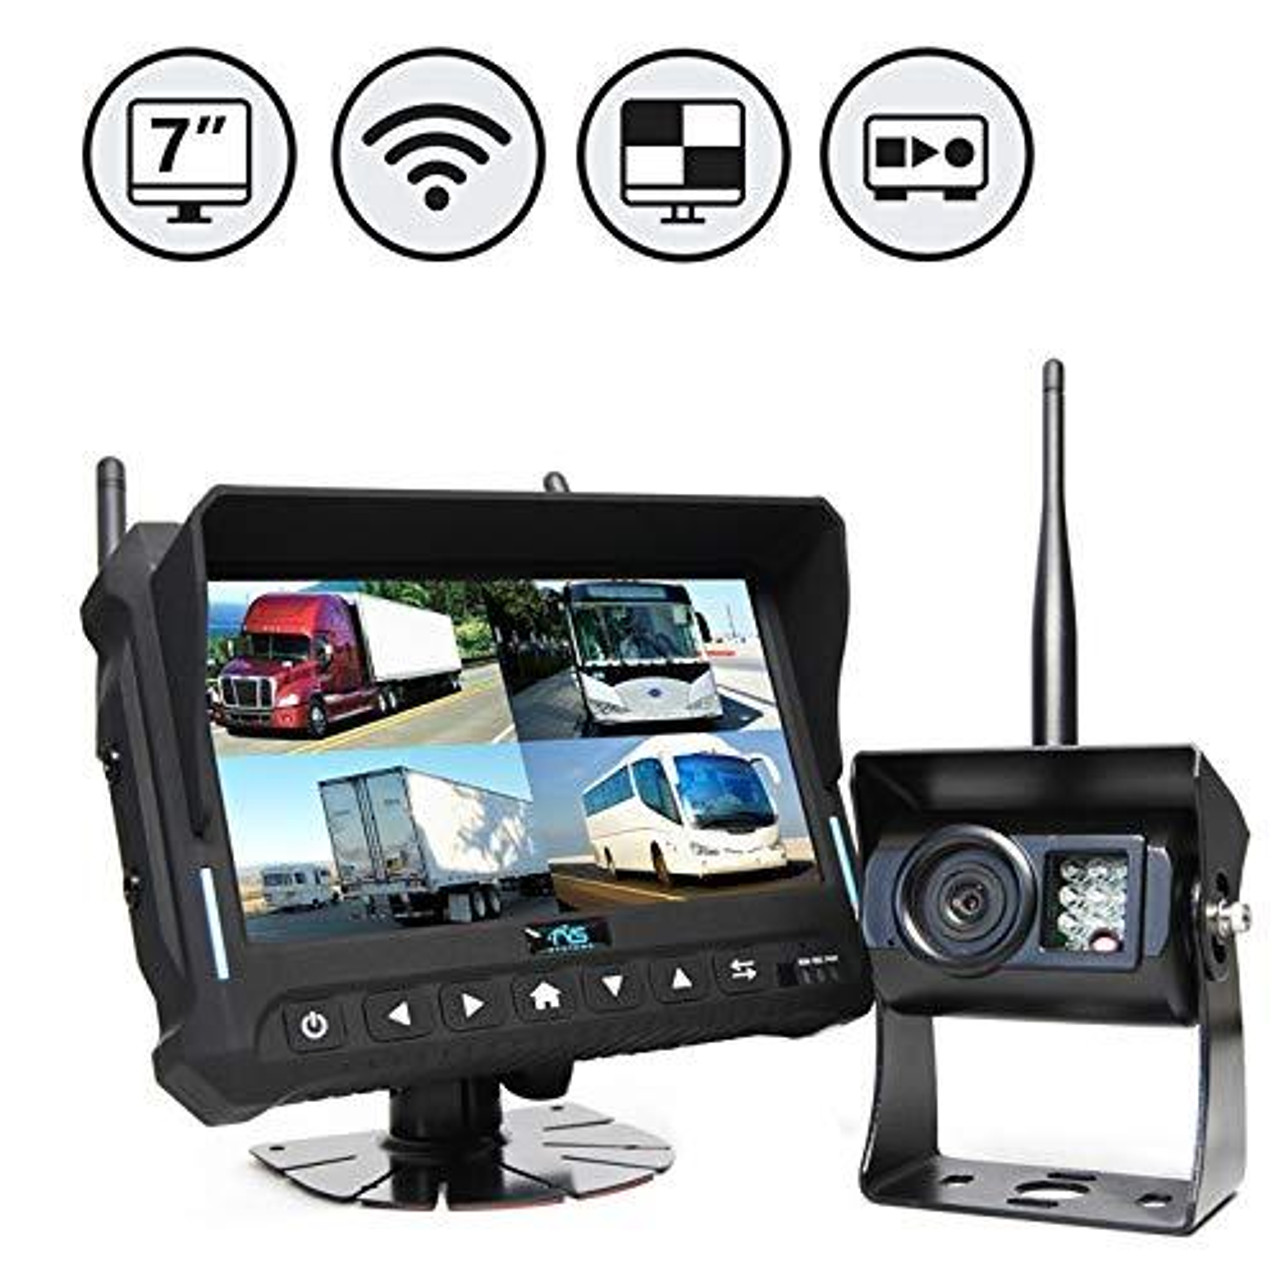 "7"" QV Monitor w/DVR (Loose Wire), Right Side Camera, RVS-Mount"